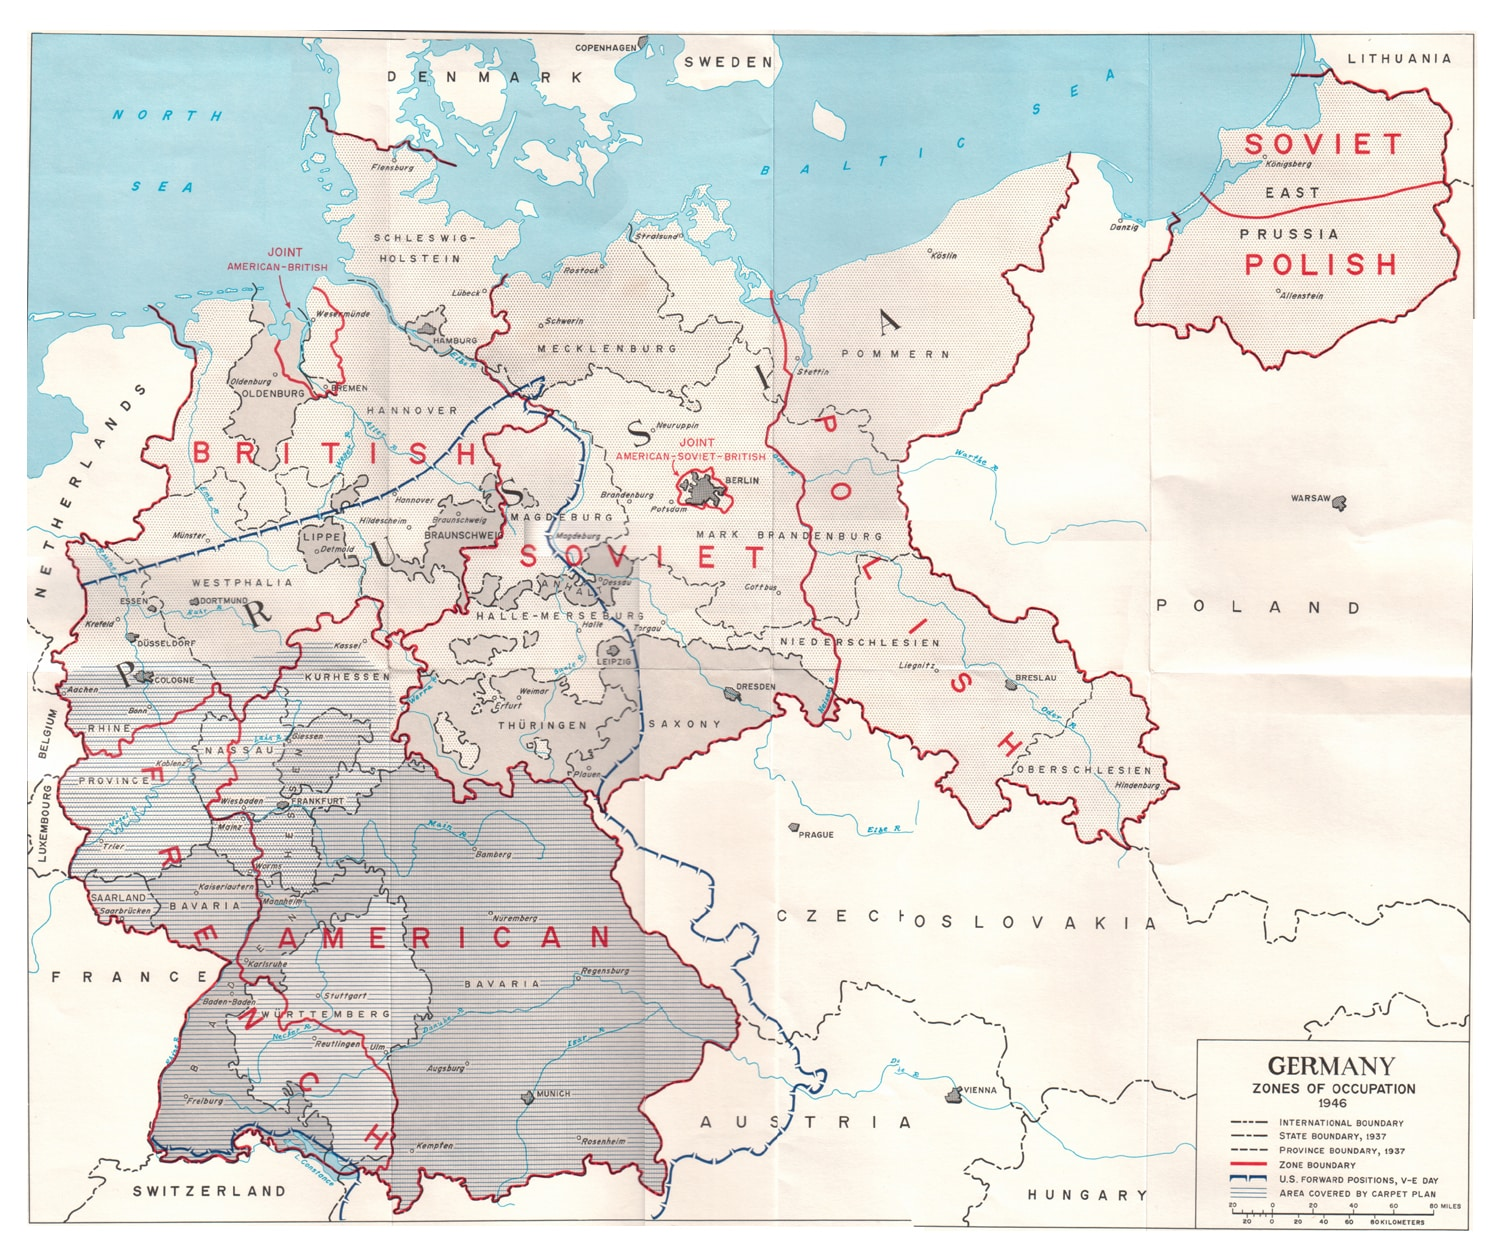 US Army map of Germany 1944-46